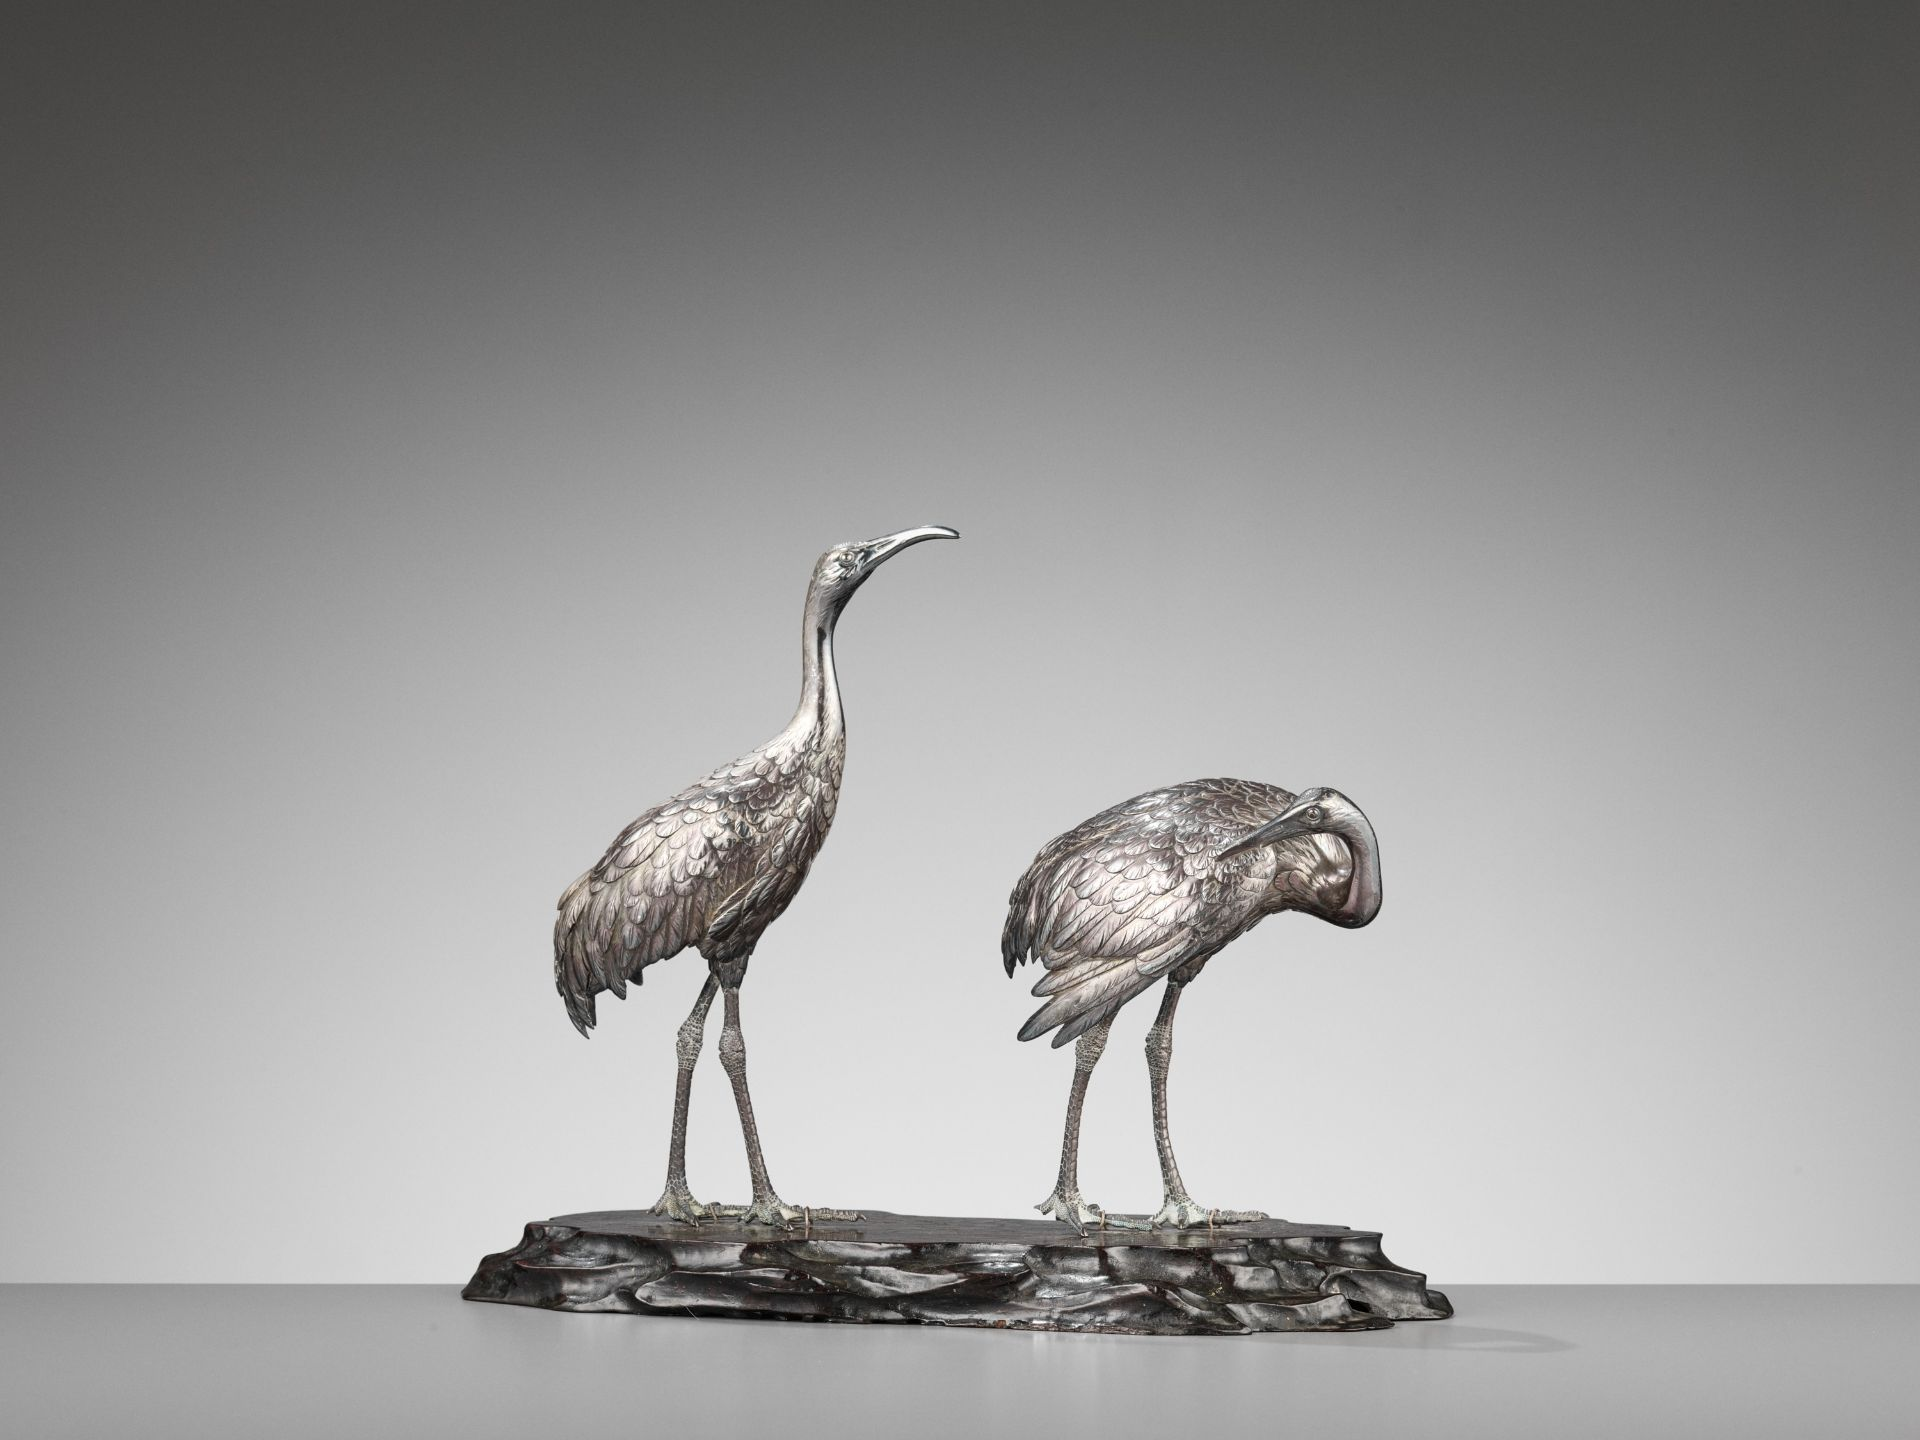 MUSASHIYA: A FINE AND RARE SILVERED OKIMONO OF A PAIR OF CRANES - Image 4 of 11